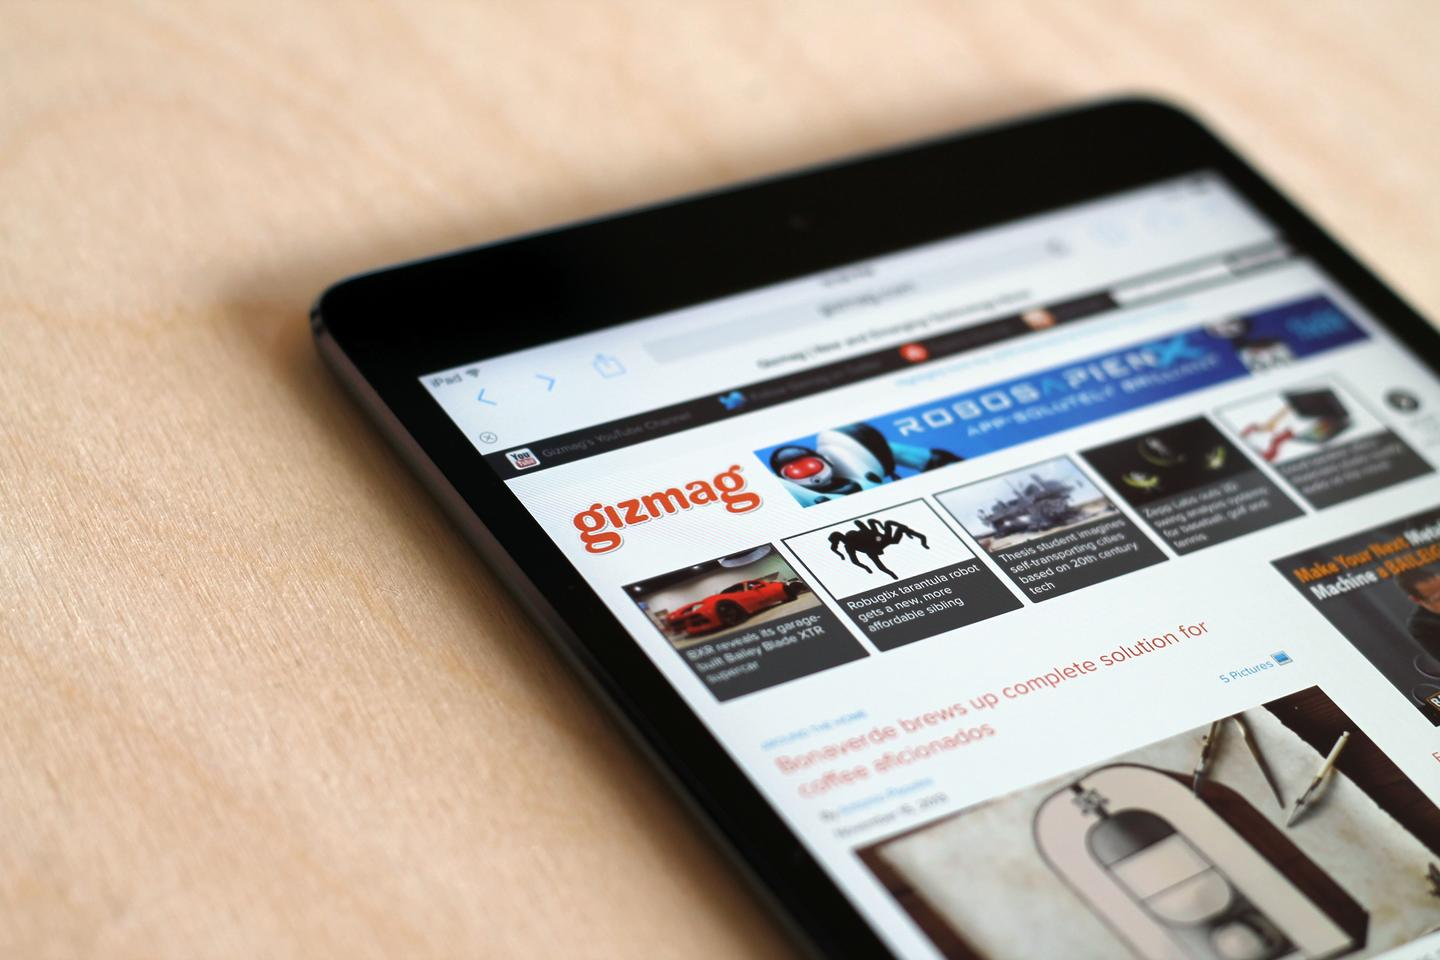 The new iPad mini's screen is a huge improvement, with 4x the pixels in the original model